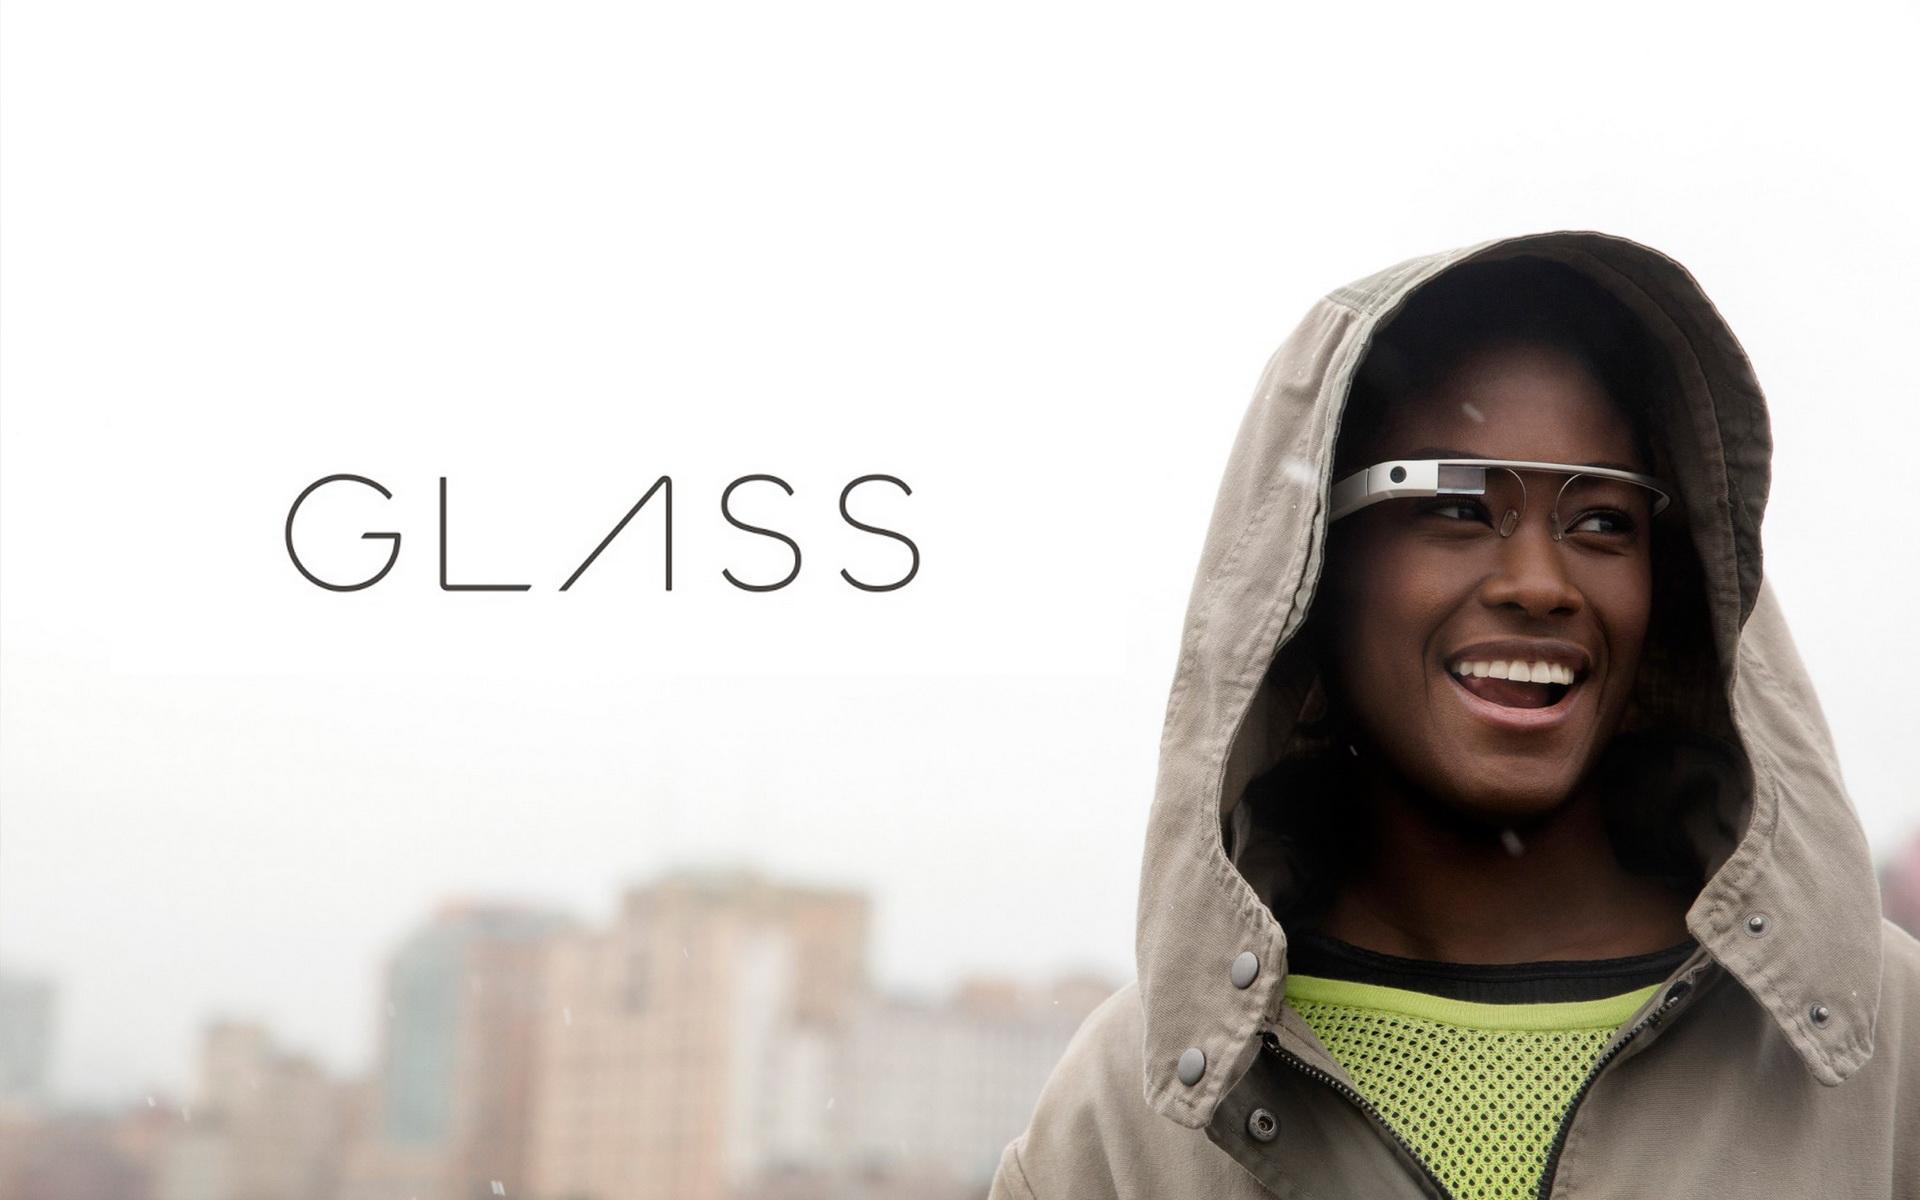 the new google glass 2.0